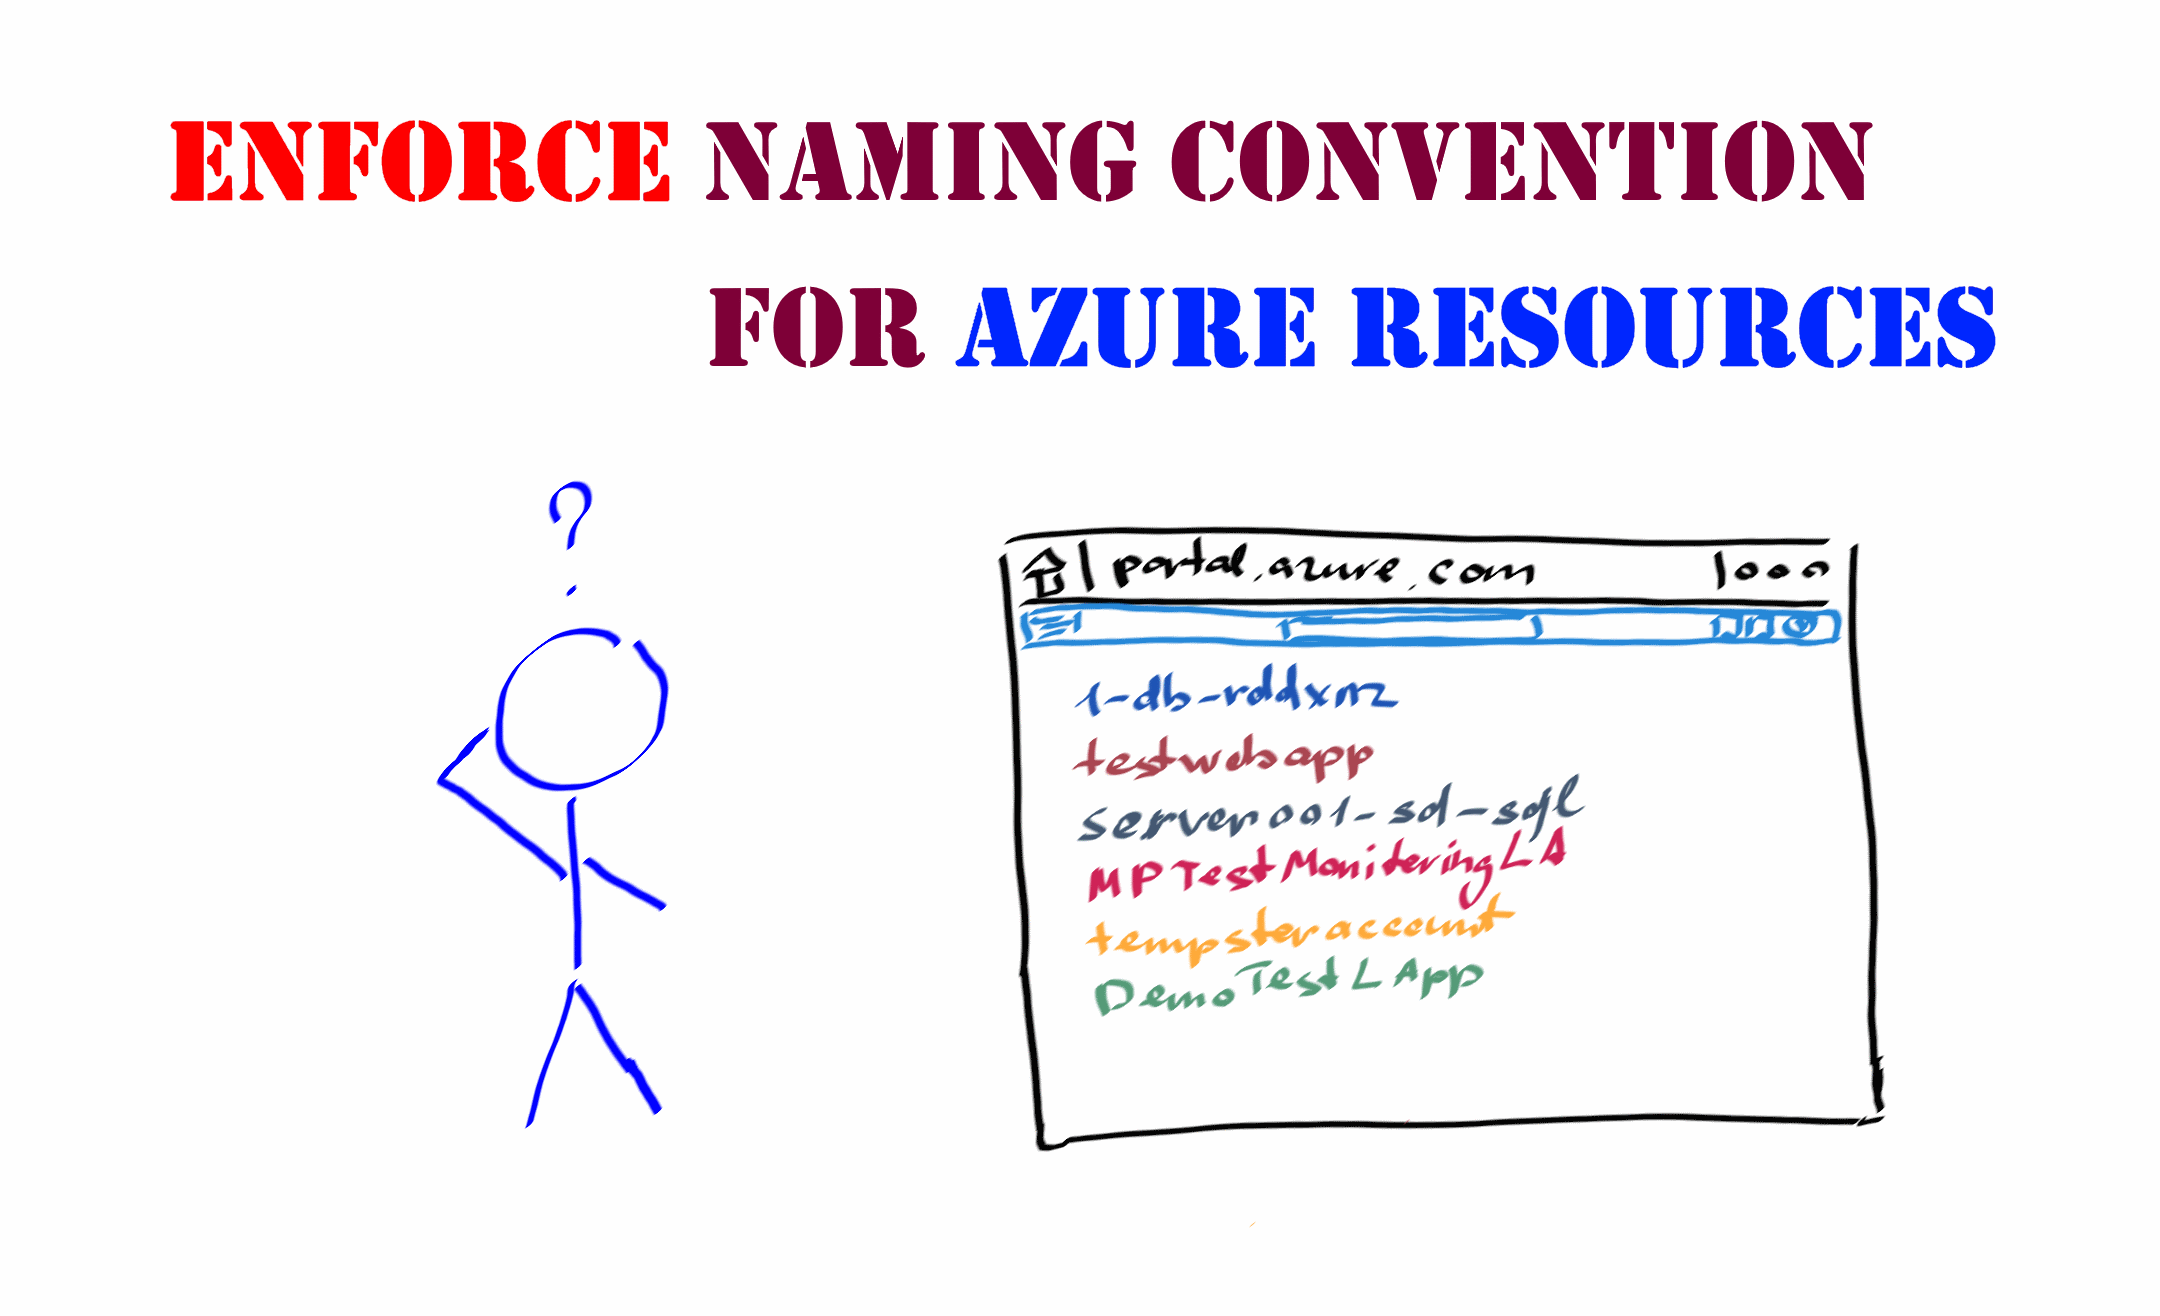 How to enforce naming convention for Azure resources